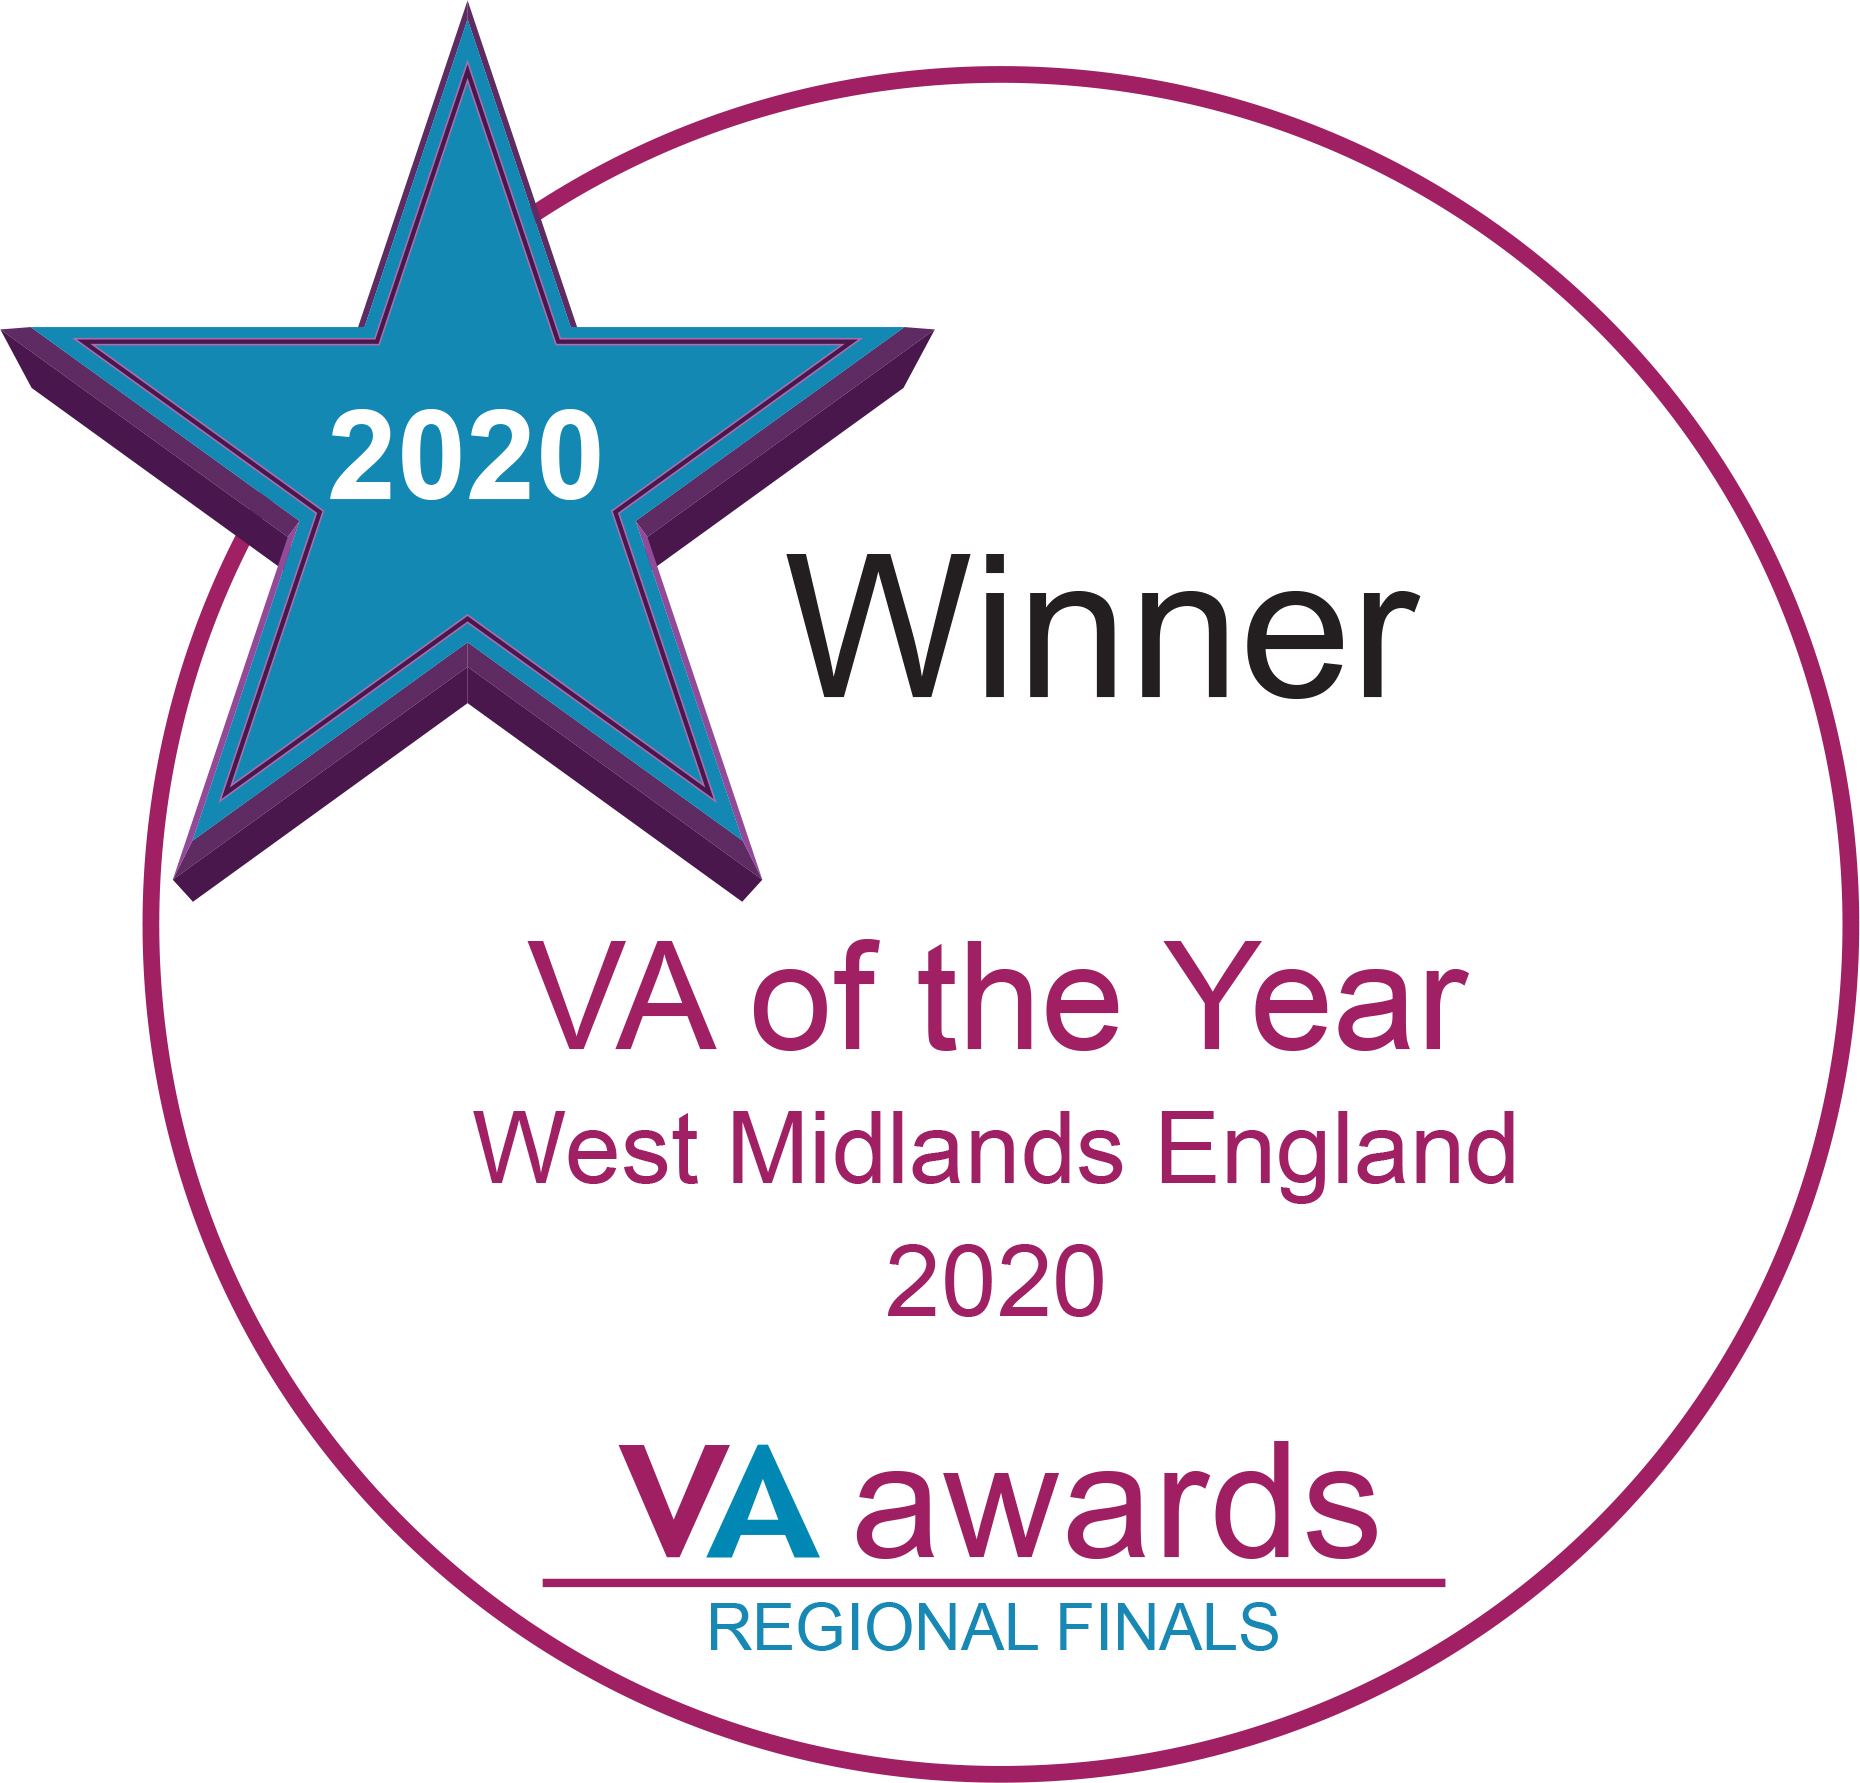 Awards-West-Midlands